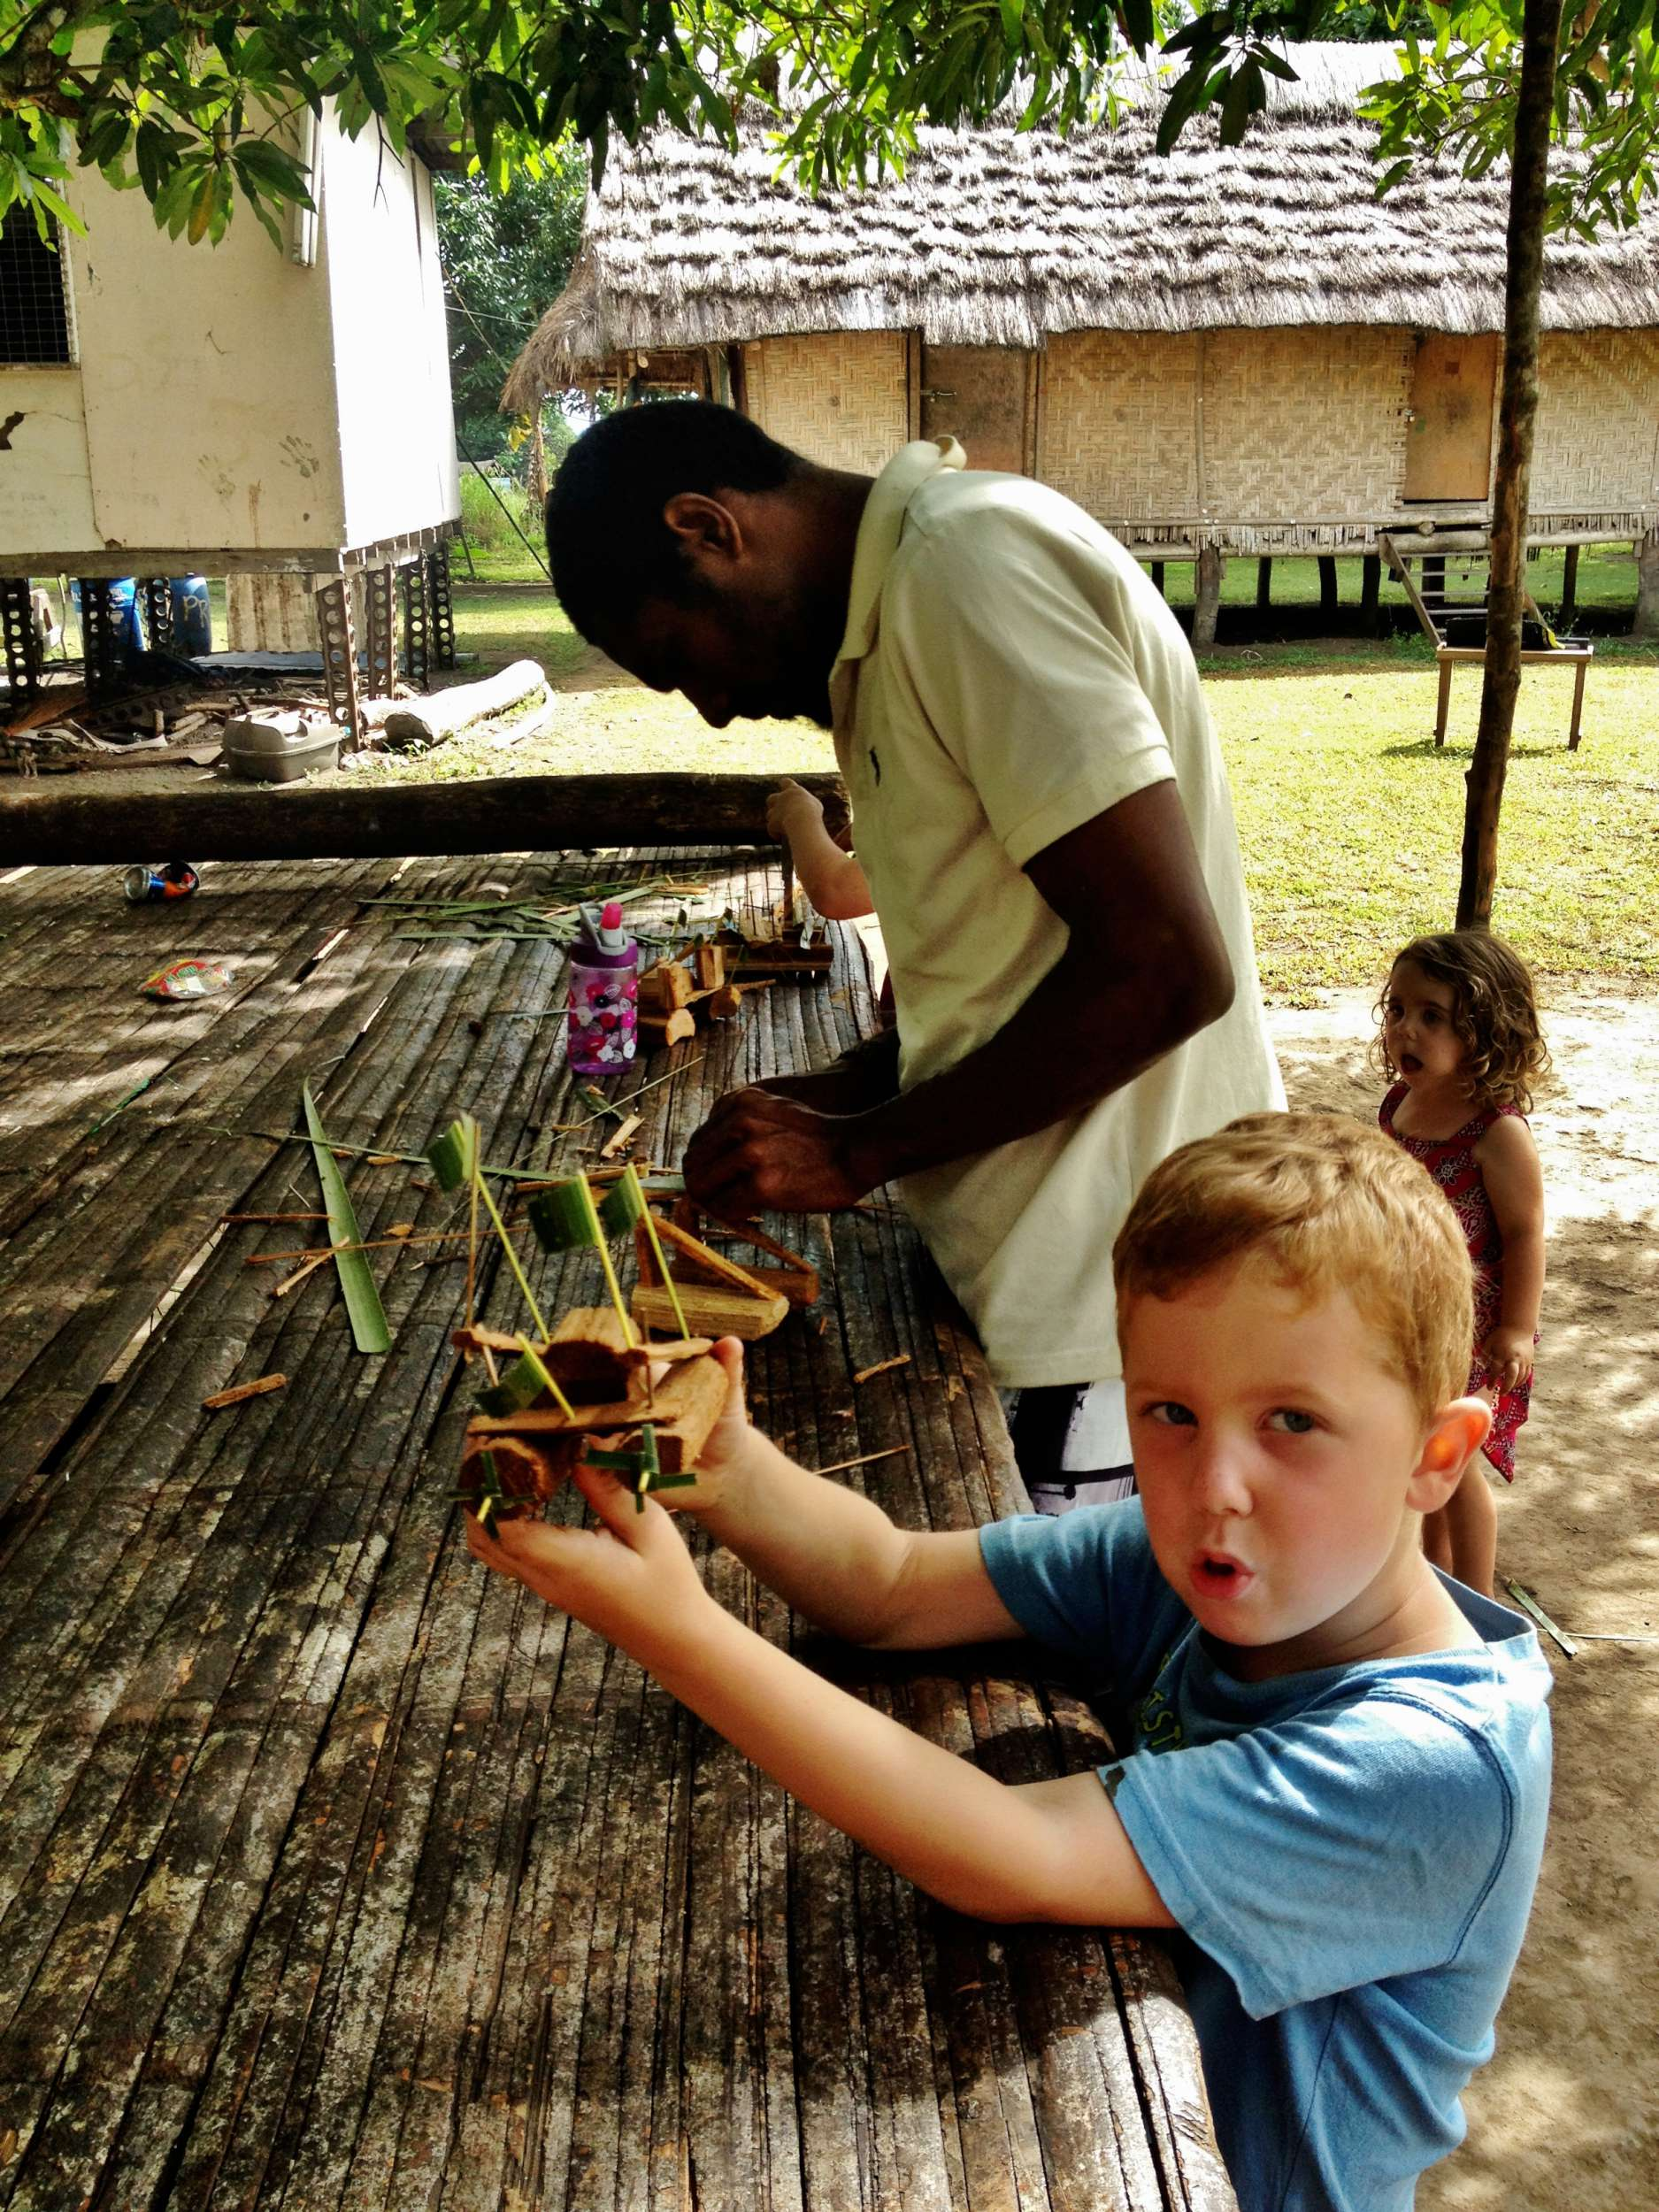 Michael's skills were many, and these boats made from Sago palms were an instant hit.